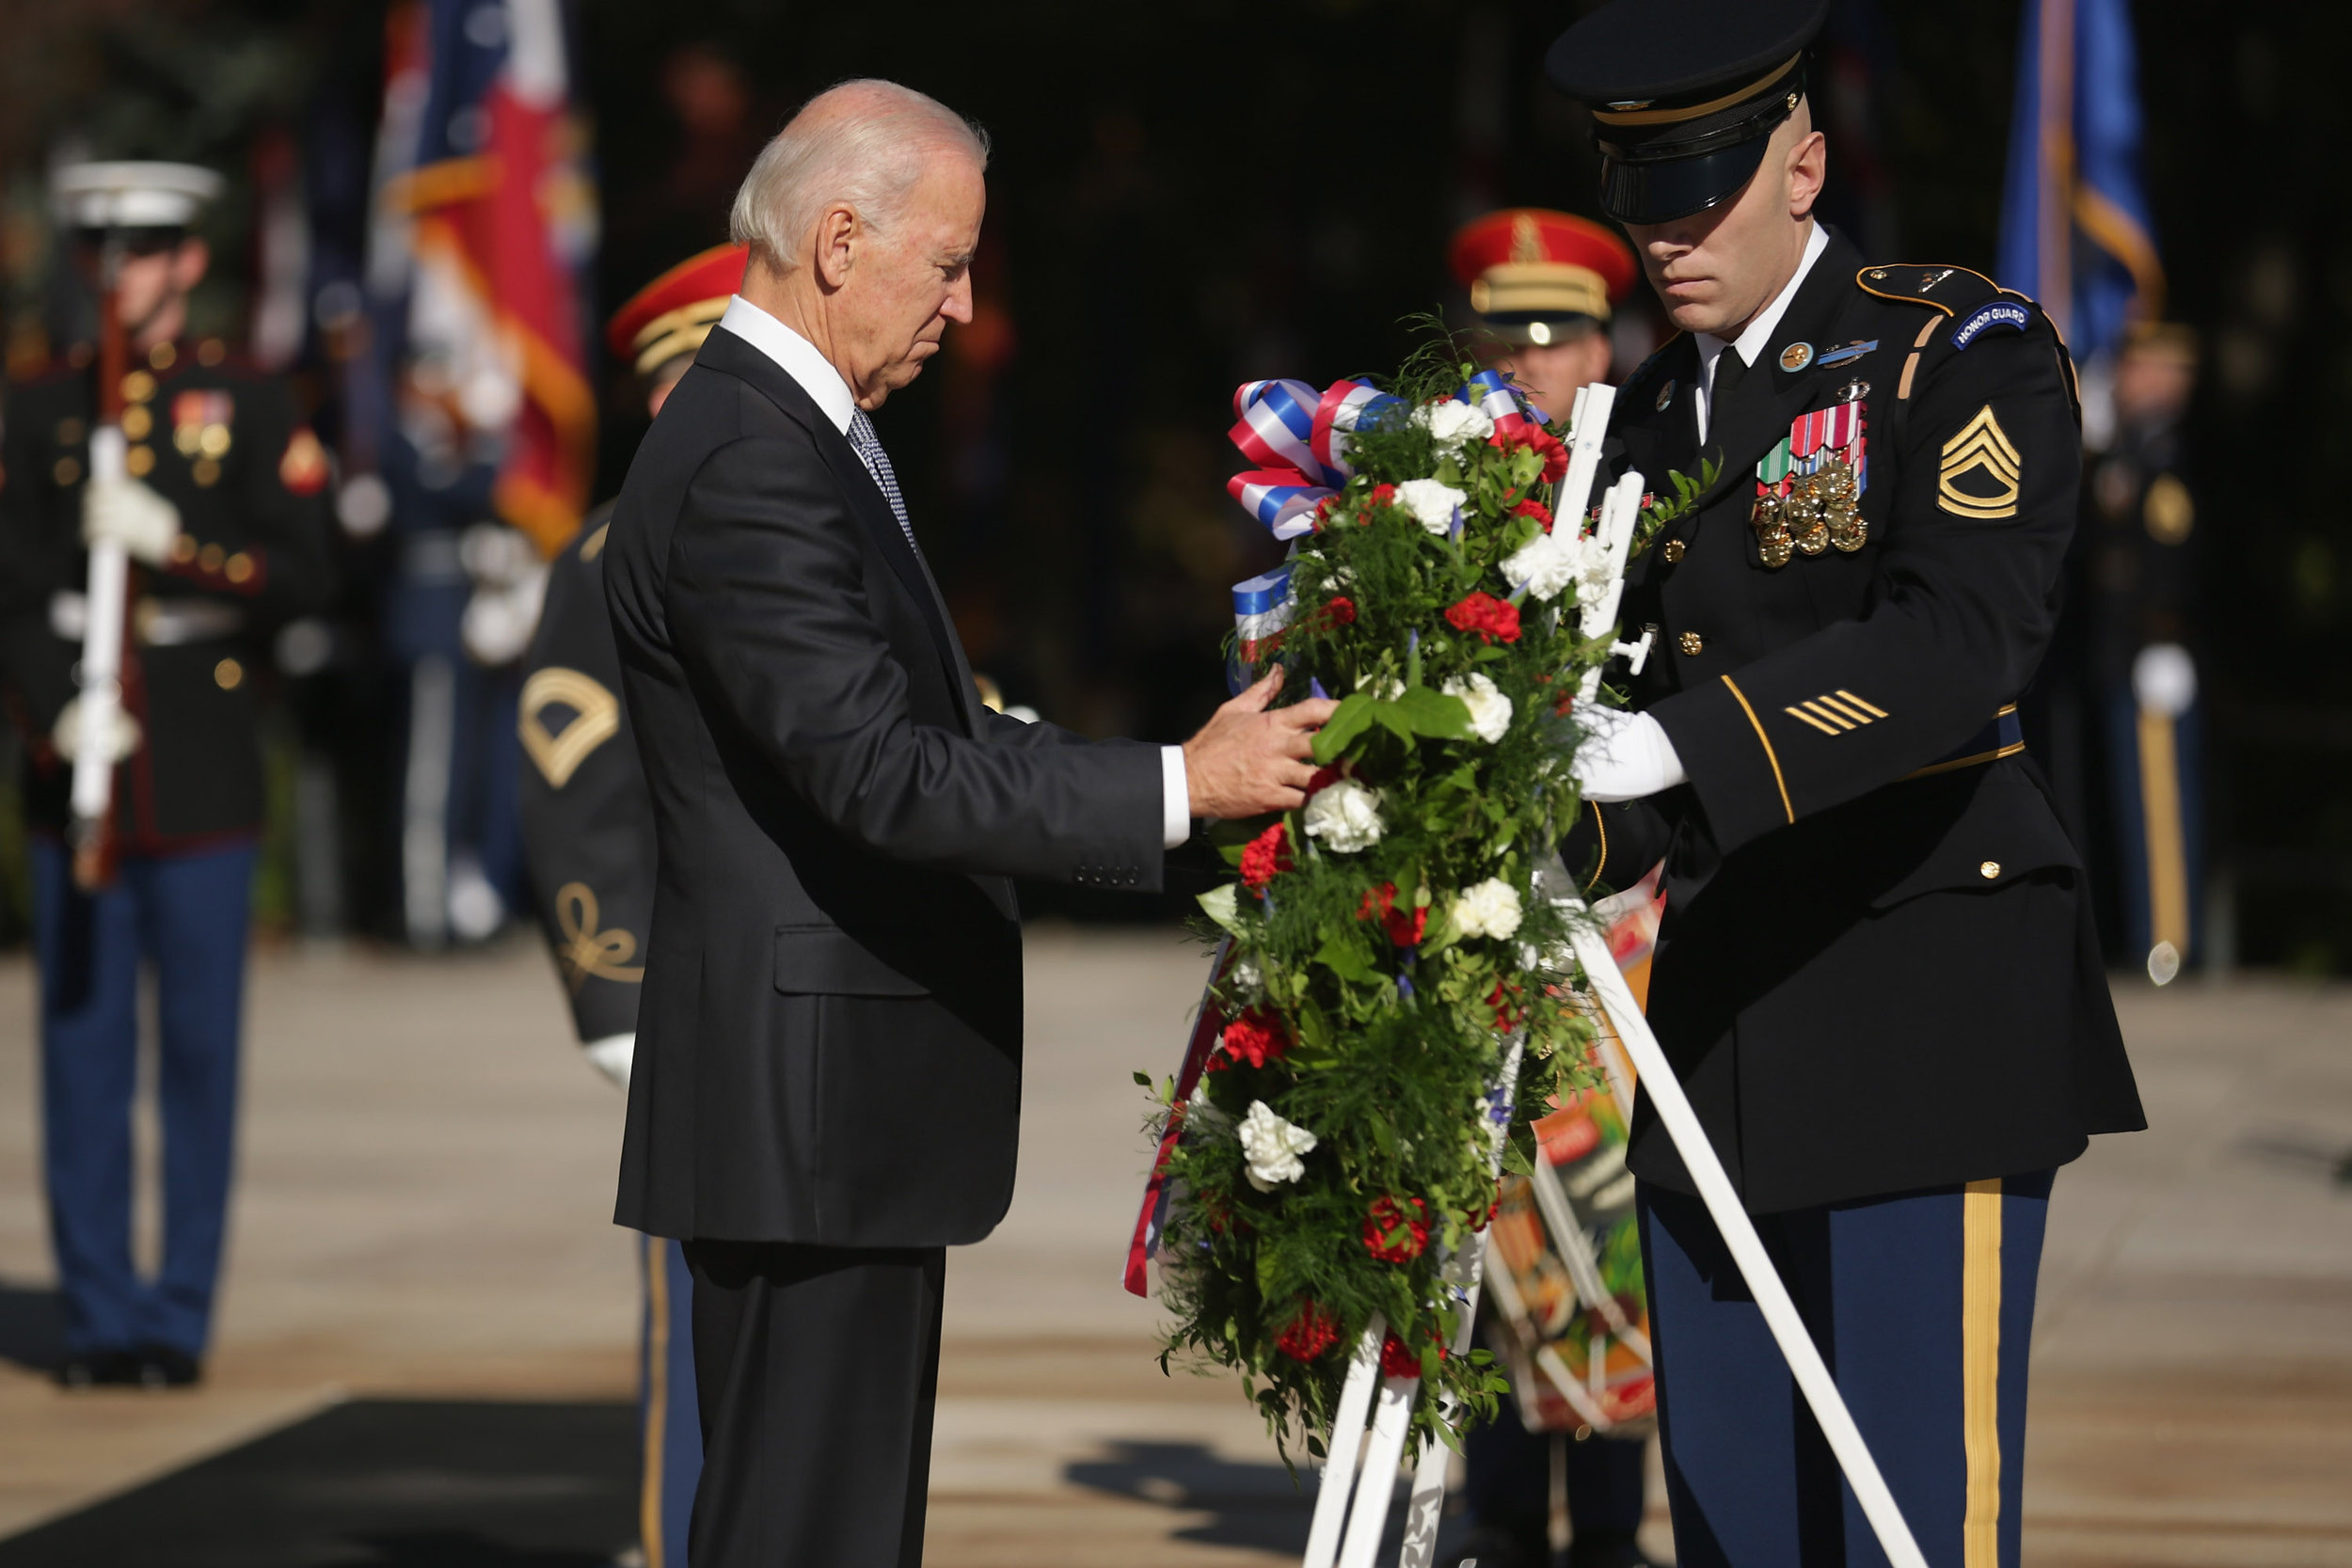 Vice President Joe Biden lays a wreath during a ceremony at the Tomb of the Unknowns during Veterans Day observations at Arlington National Cemetery on Nov. 11, 2014, in Arlington, Virginia. Originally established as Armistice Day in 1919, the holiday was renamed Veterans Day in 1954 by President Dwight Eisenhower. (Photo by Chip Somodevilla/Getty Images)